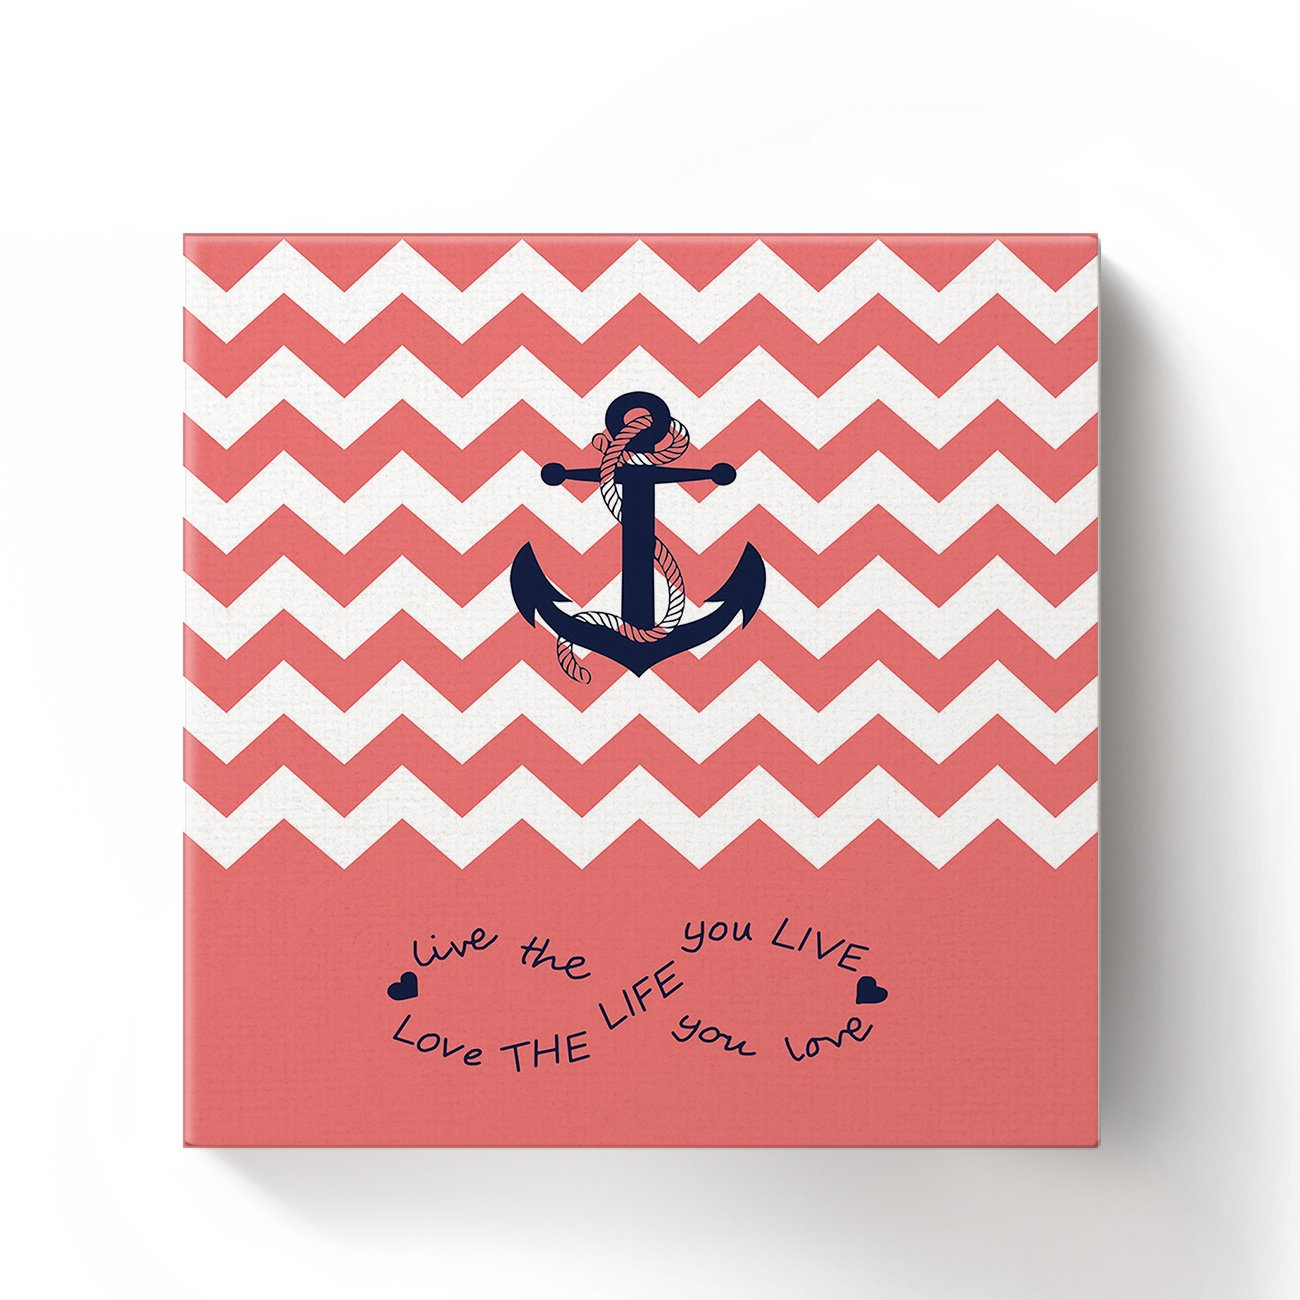 Anchor Love The Life You Love Chevron Zig Zag Ripple Coral White - Oil Painting On Canvas with Wood Frame Modern Wall Art Pictures For Home Decoration,12''x12'' by Prime Leader (Image #1)